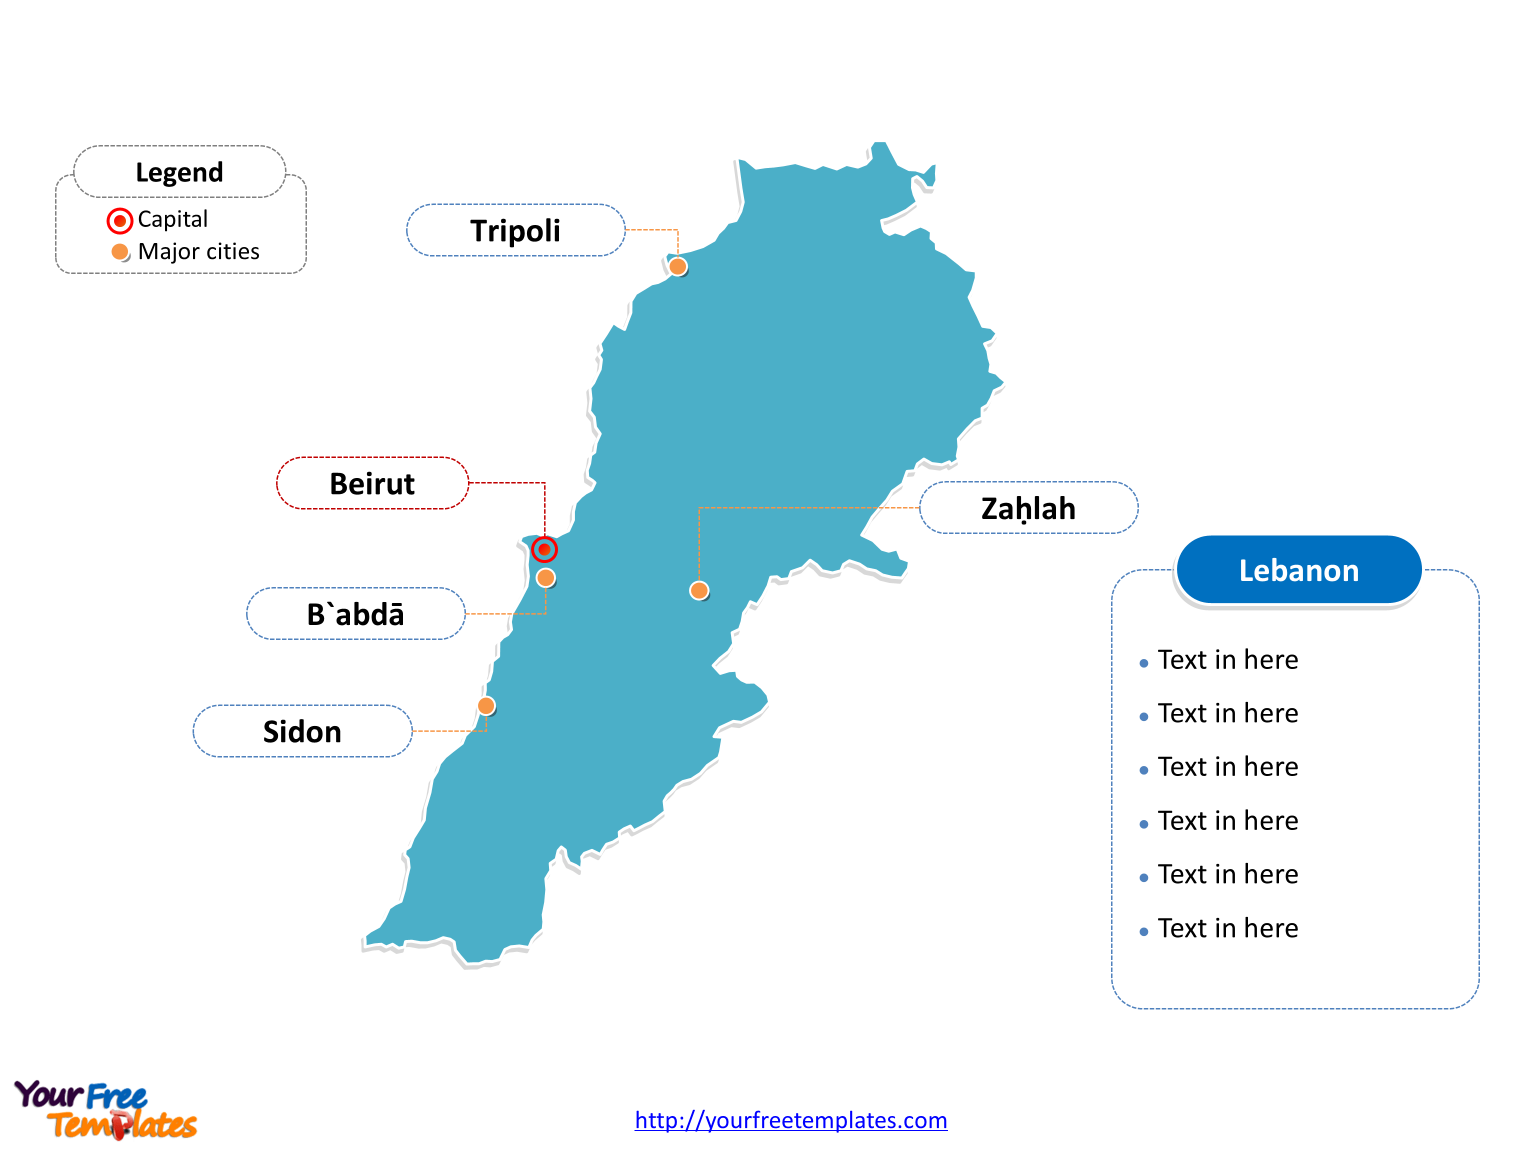 Free Lebanon Editable Map Free PowerPoint Templates - Lebanon map